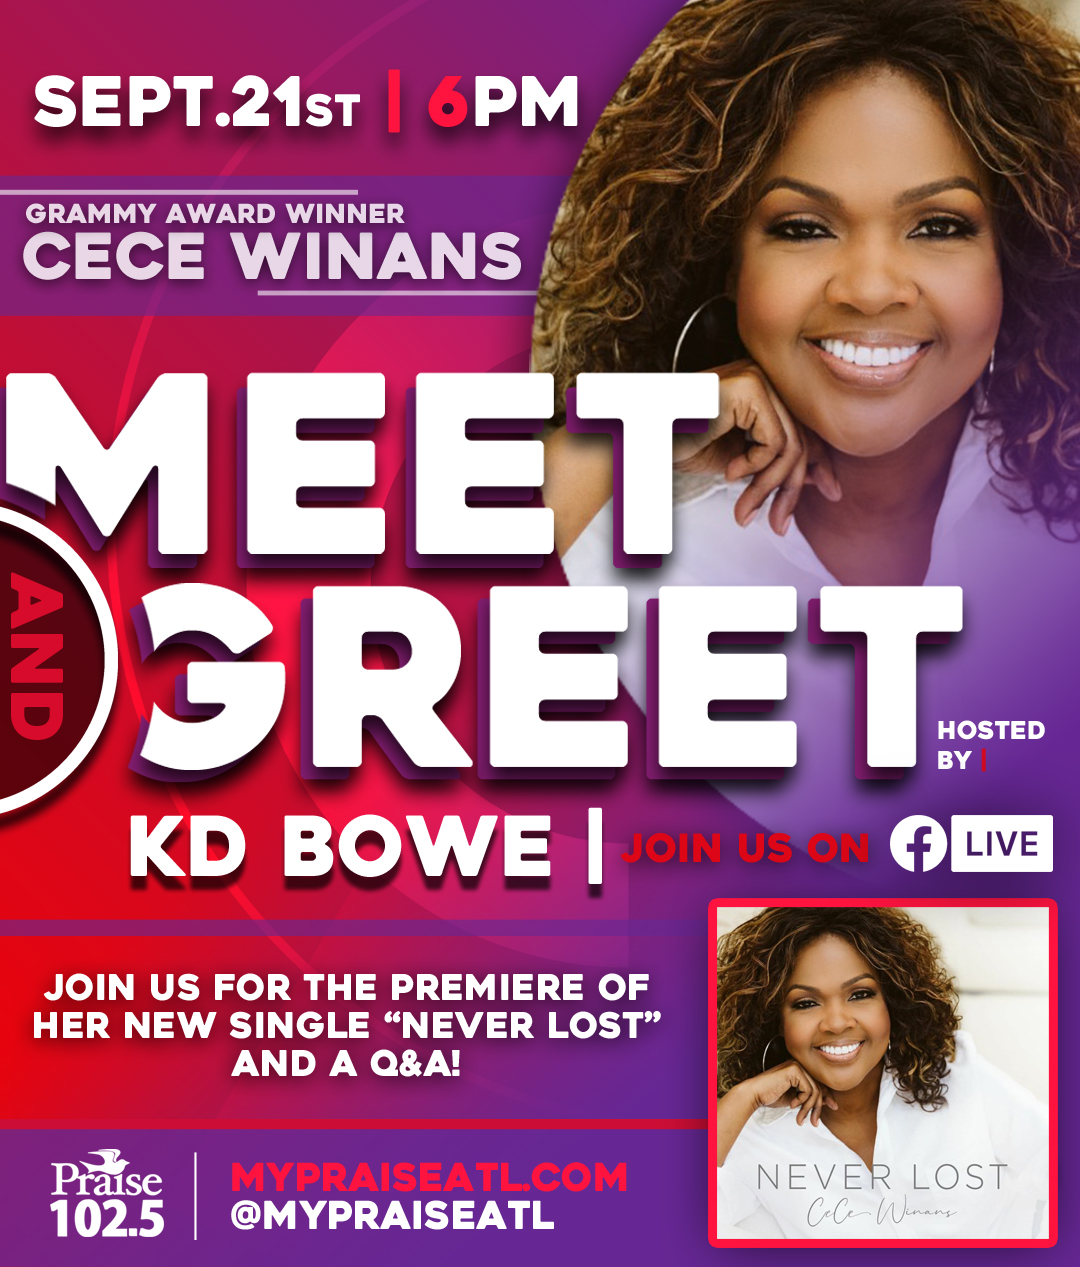 CeCe Winans meet and great